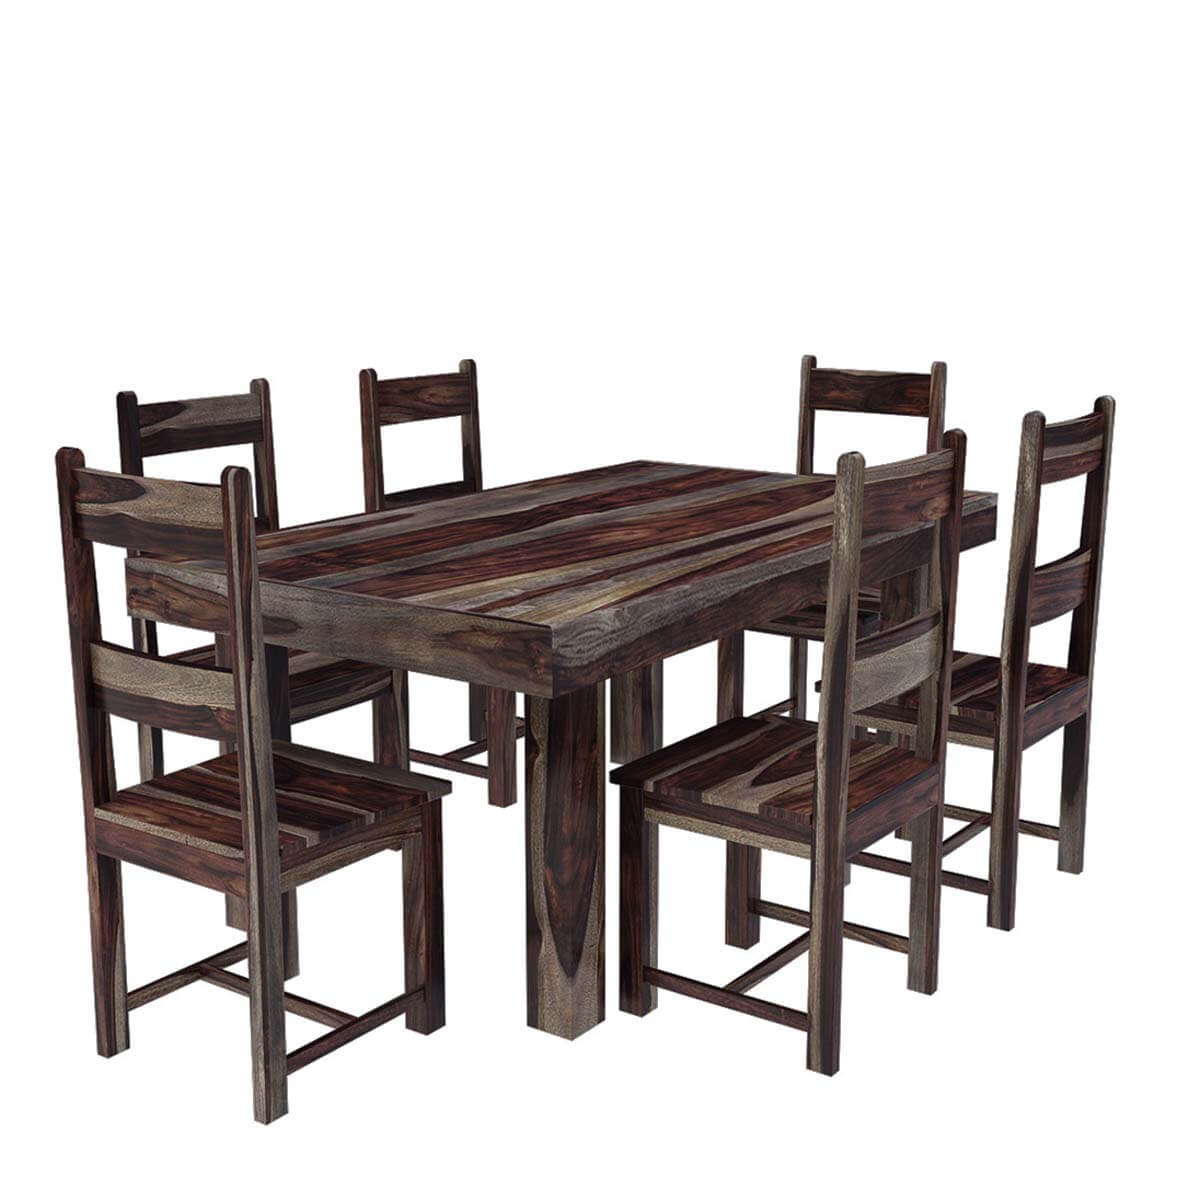 Rustic Dining Room Table Sets: Frisco Modern Solid Wood Casual Rustic Dining Room Table